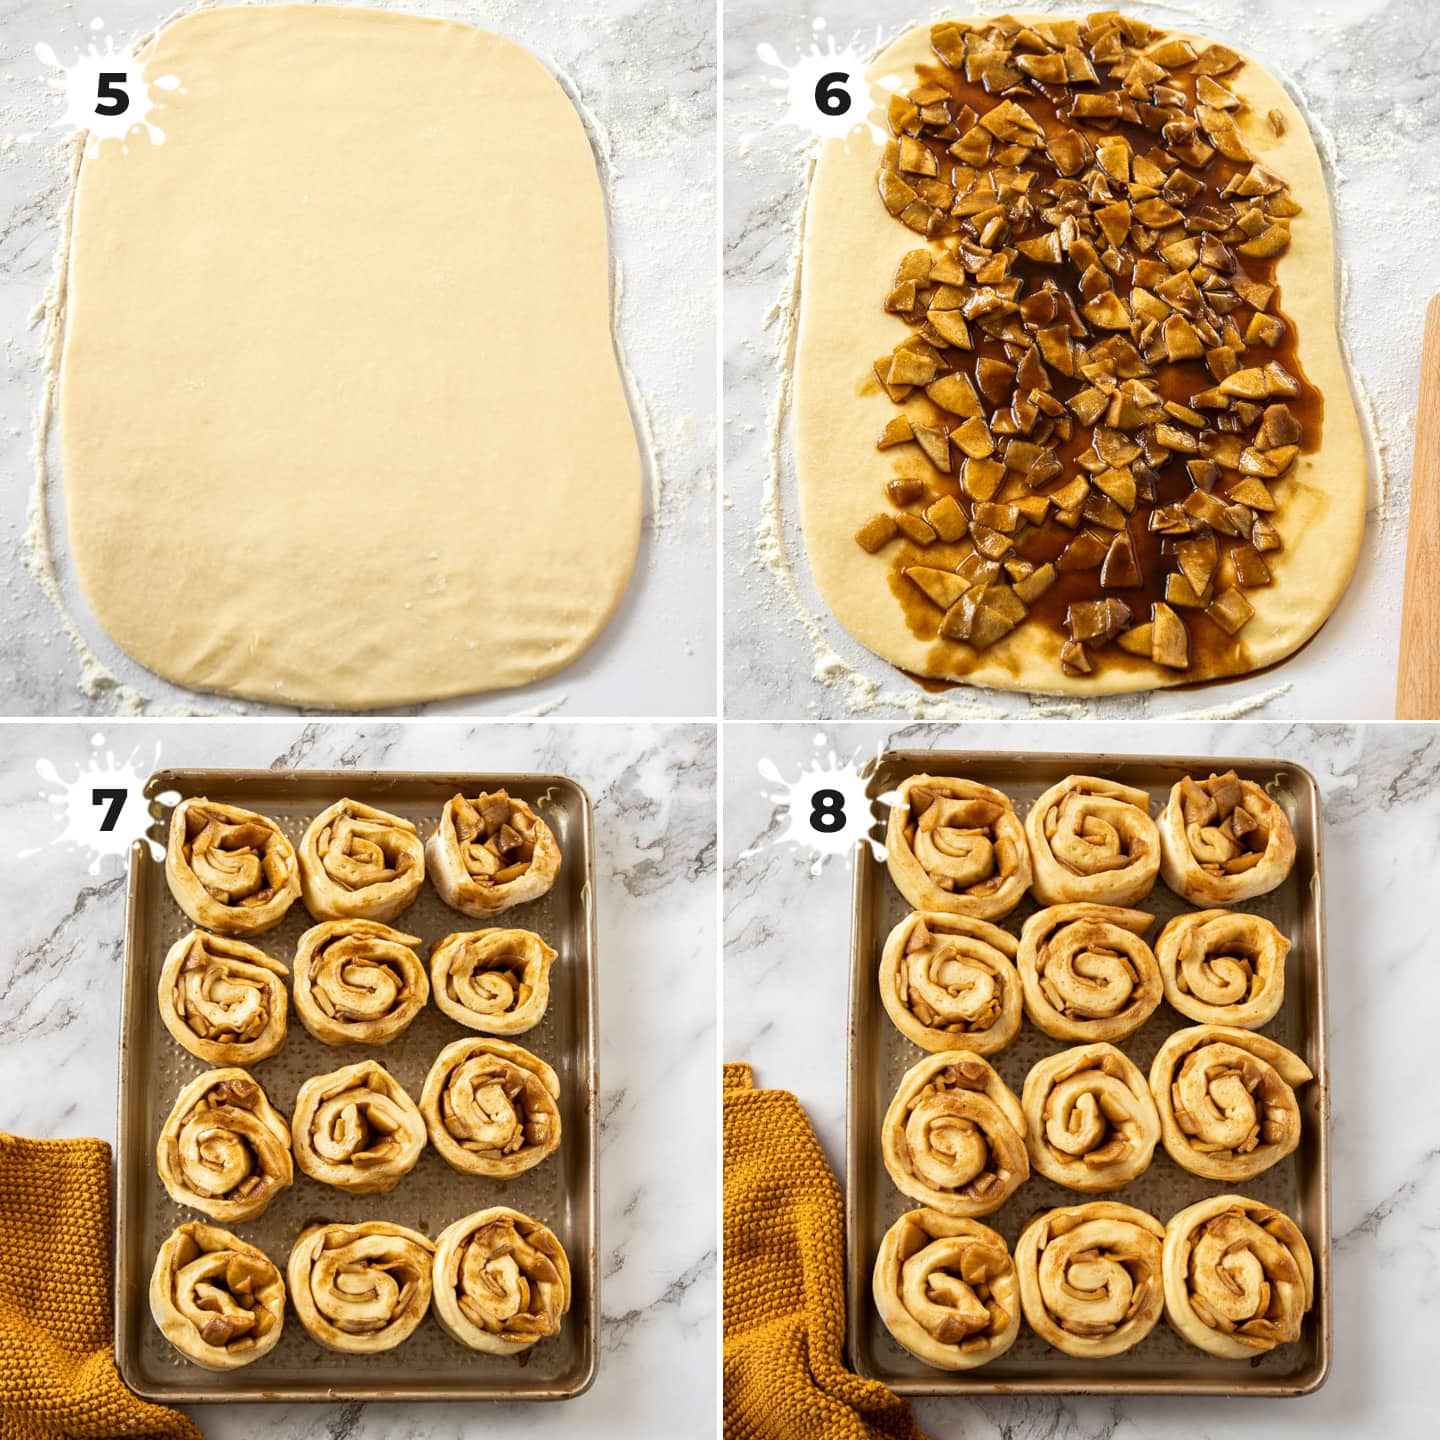 4 images showing dough being filled and rolled up for cinnamon rolls